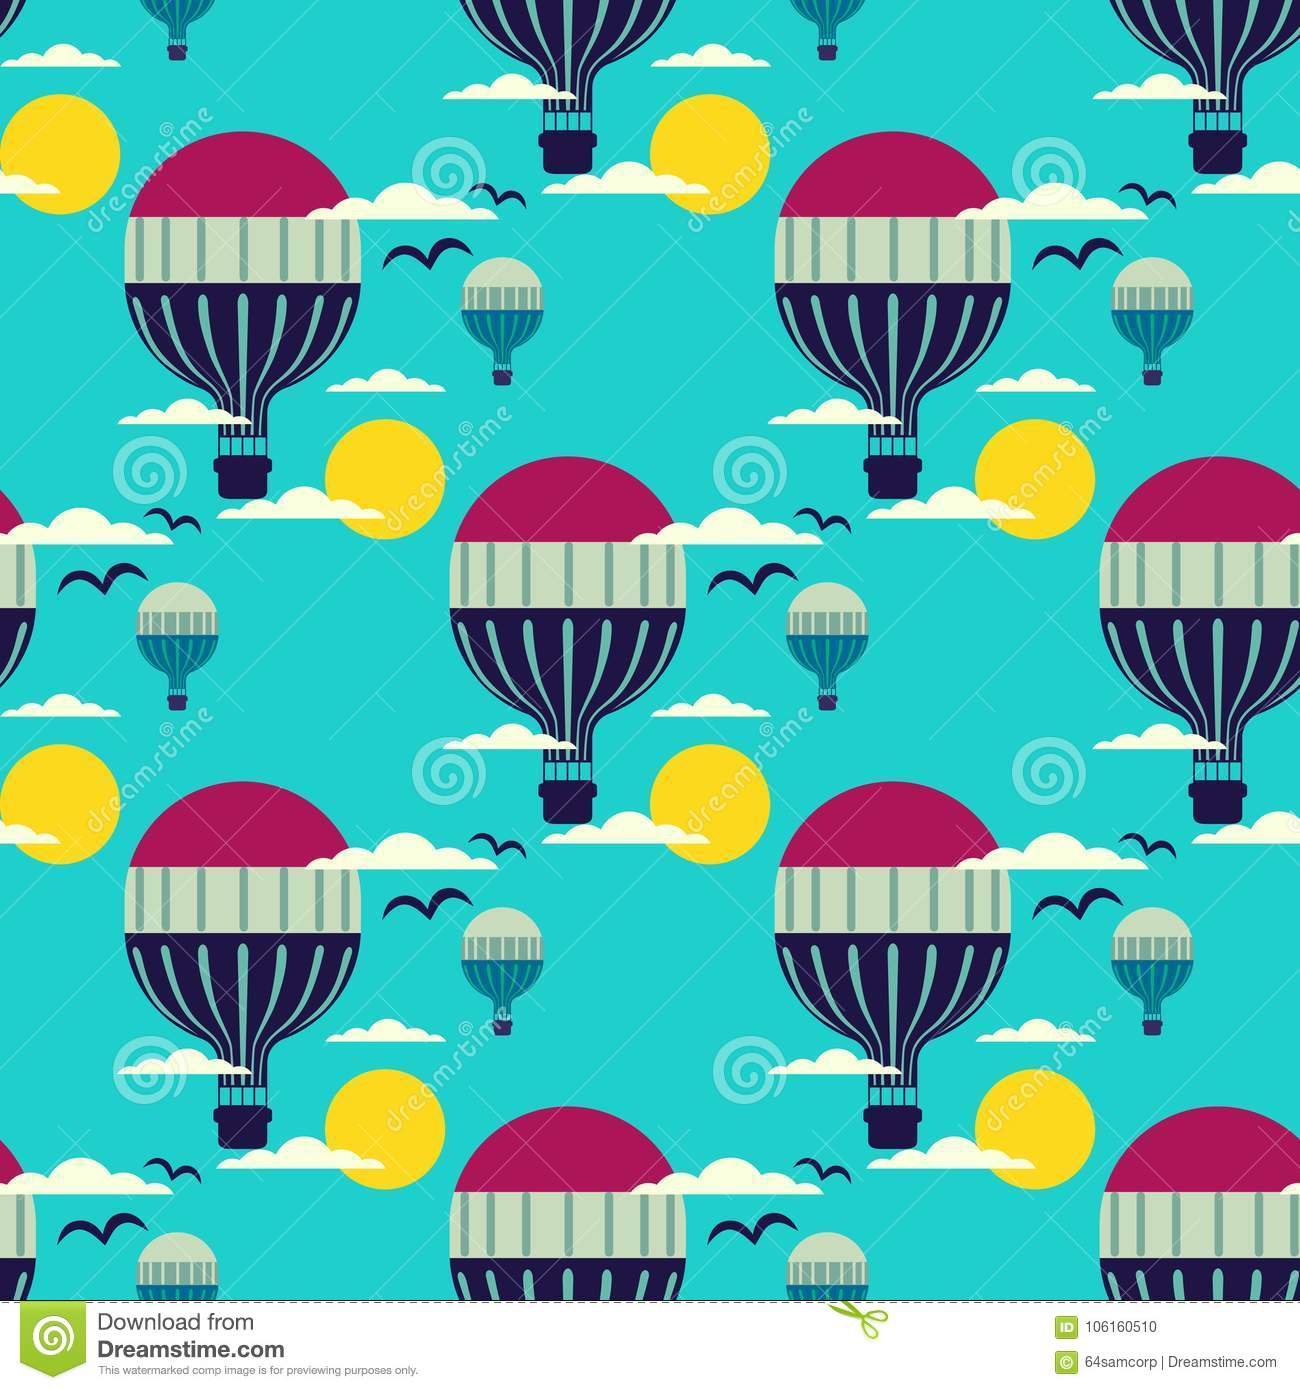 Hot air balloon pattern stock vector. Illustration of cute - 106160510